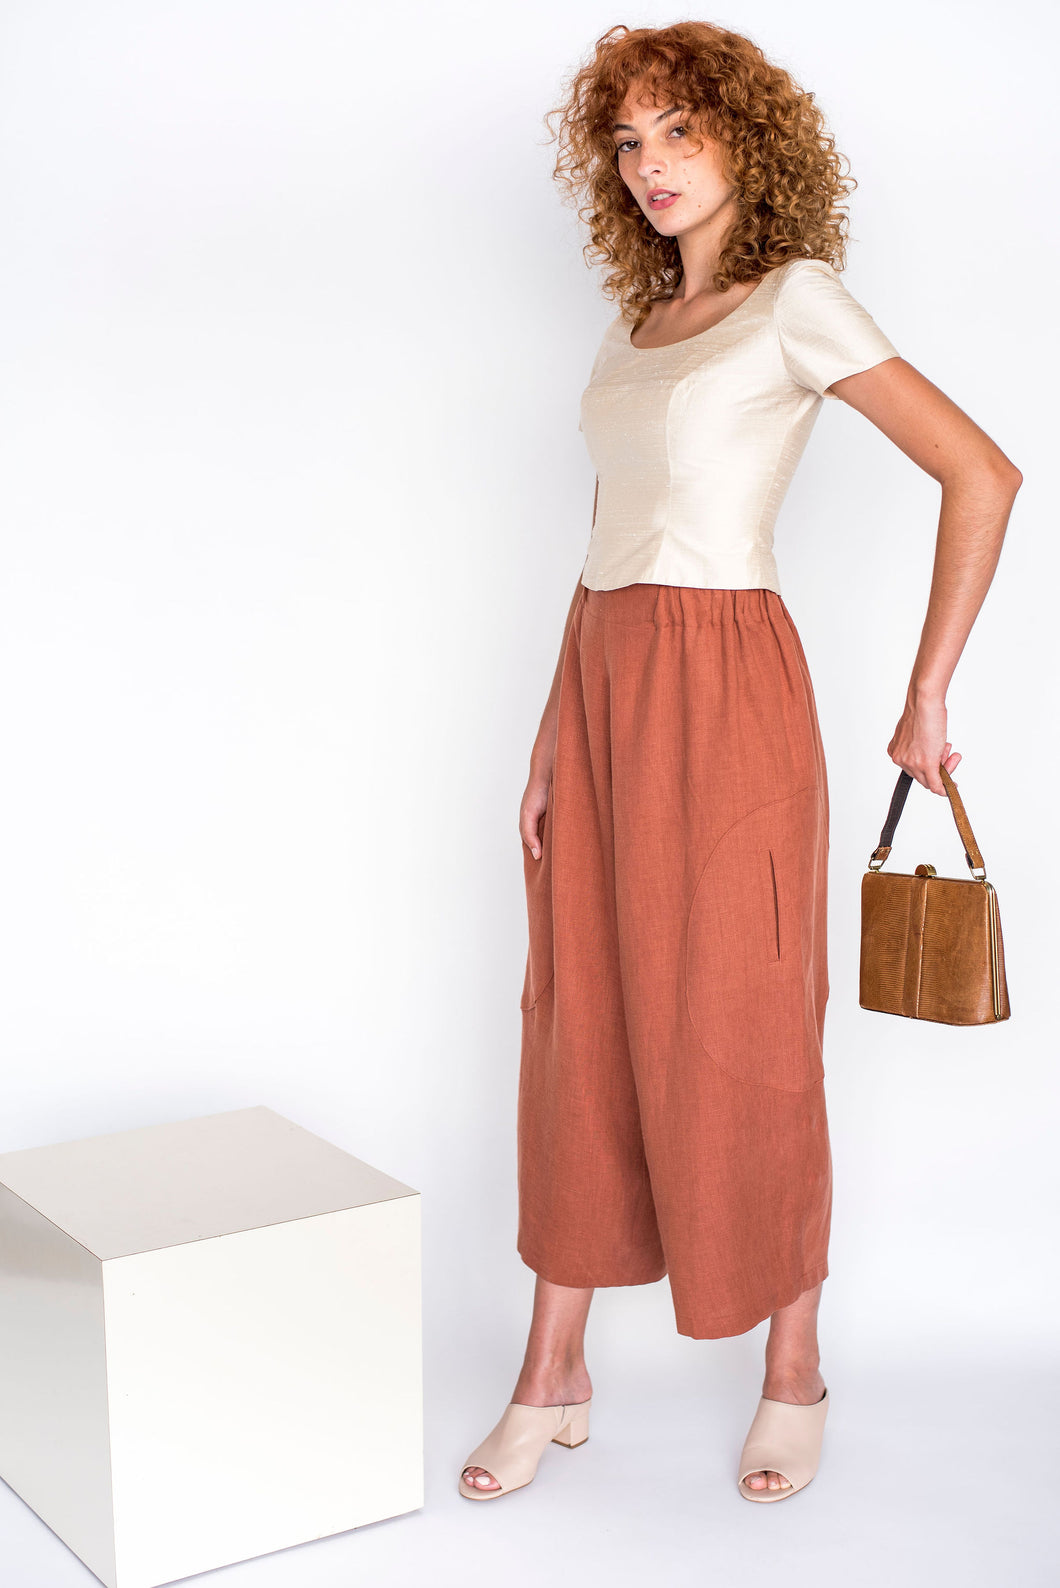 Big Circle Handmade Linen Pants Sizes S-L